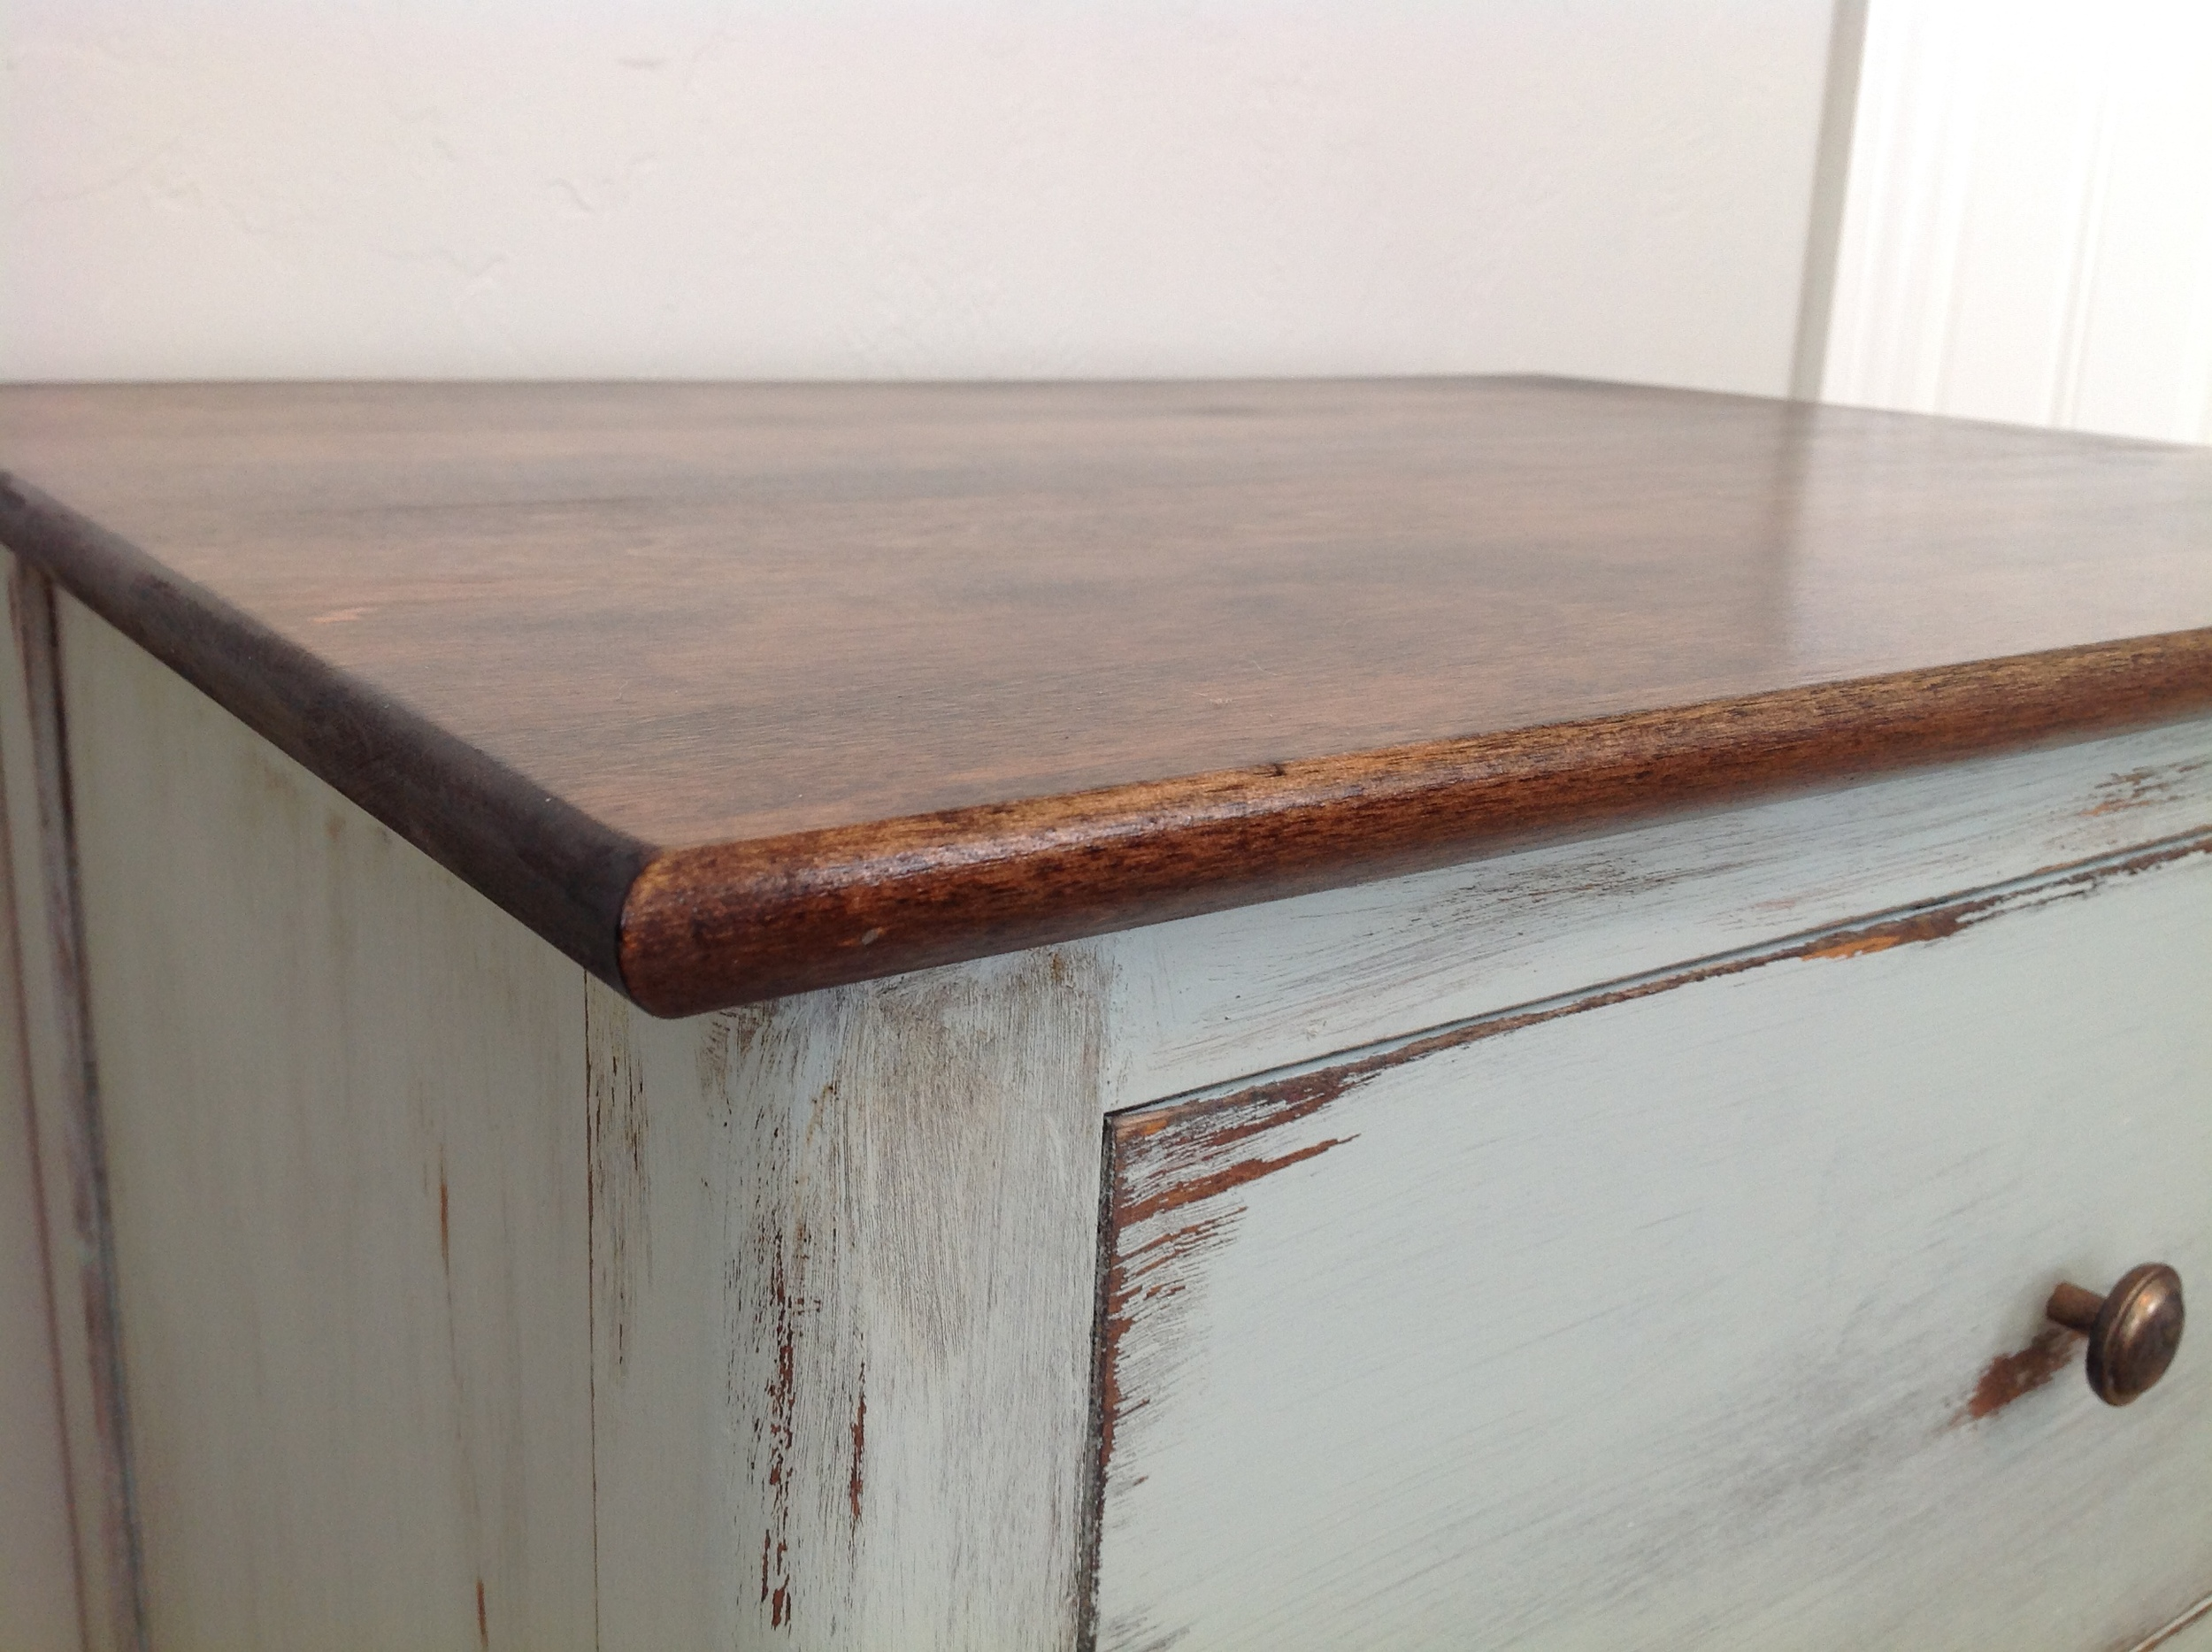 I used chalk paint on the base and drawer of this table. Other techniques were also used to achieve this look. More tutorials to come....